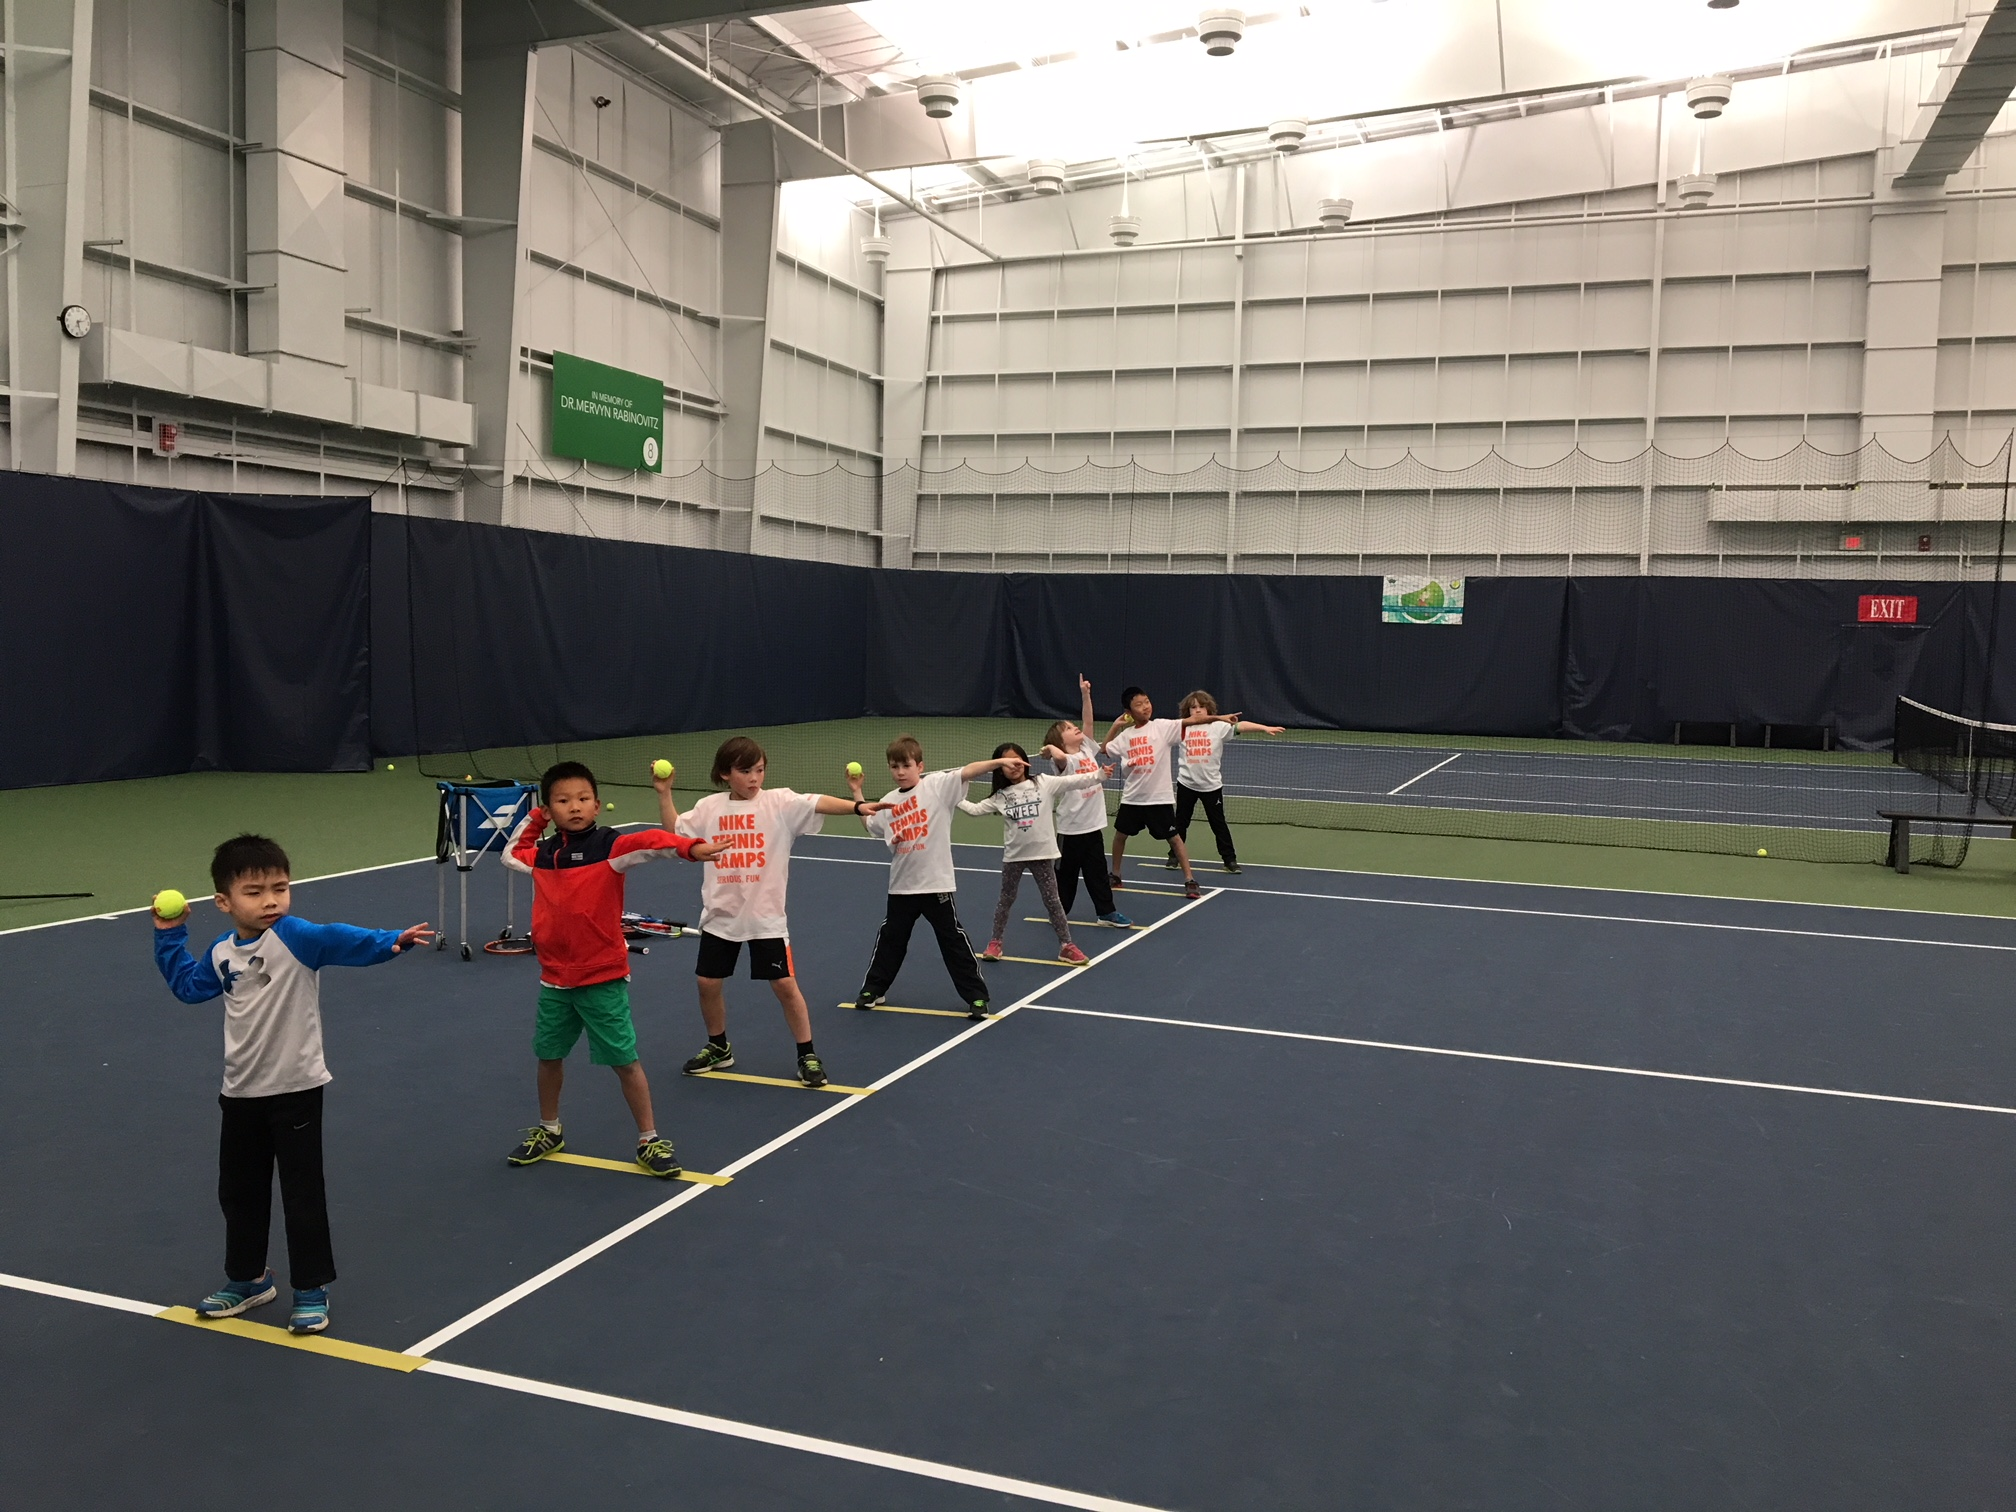 nike winter tennis camp was a smash with players!